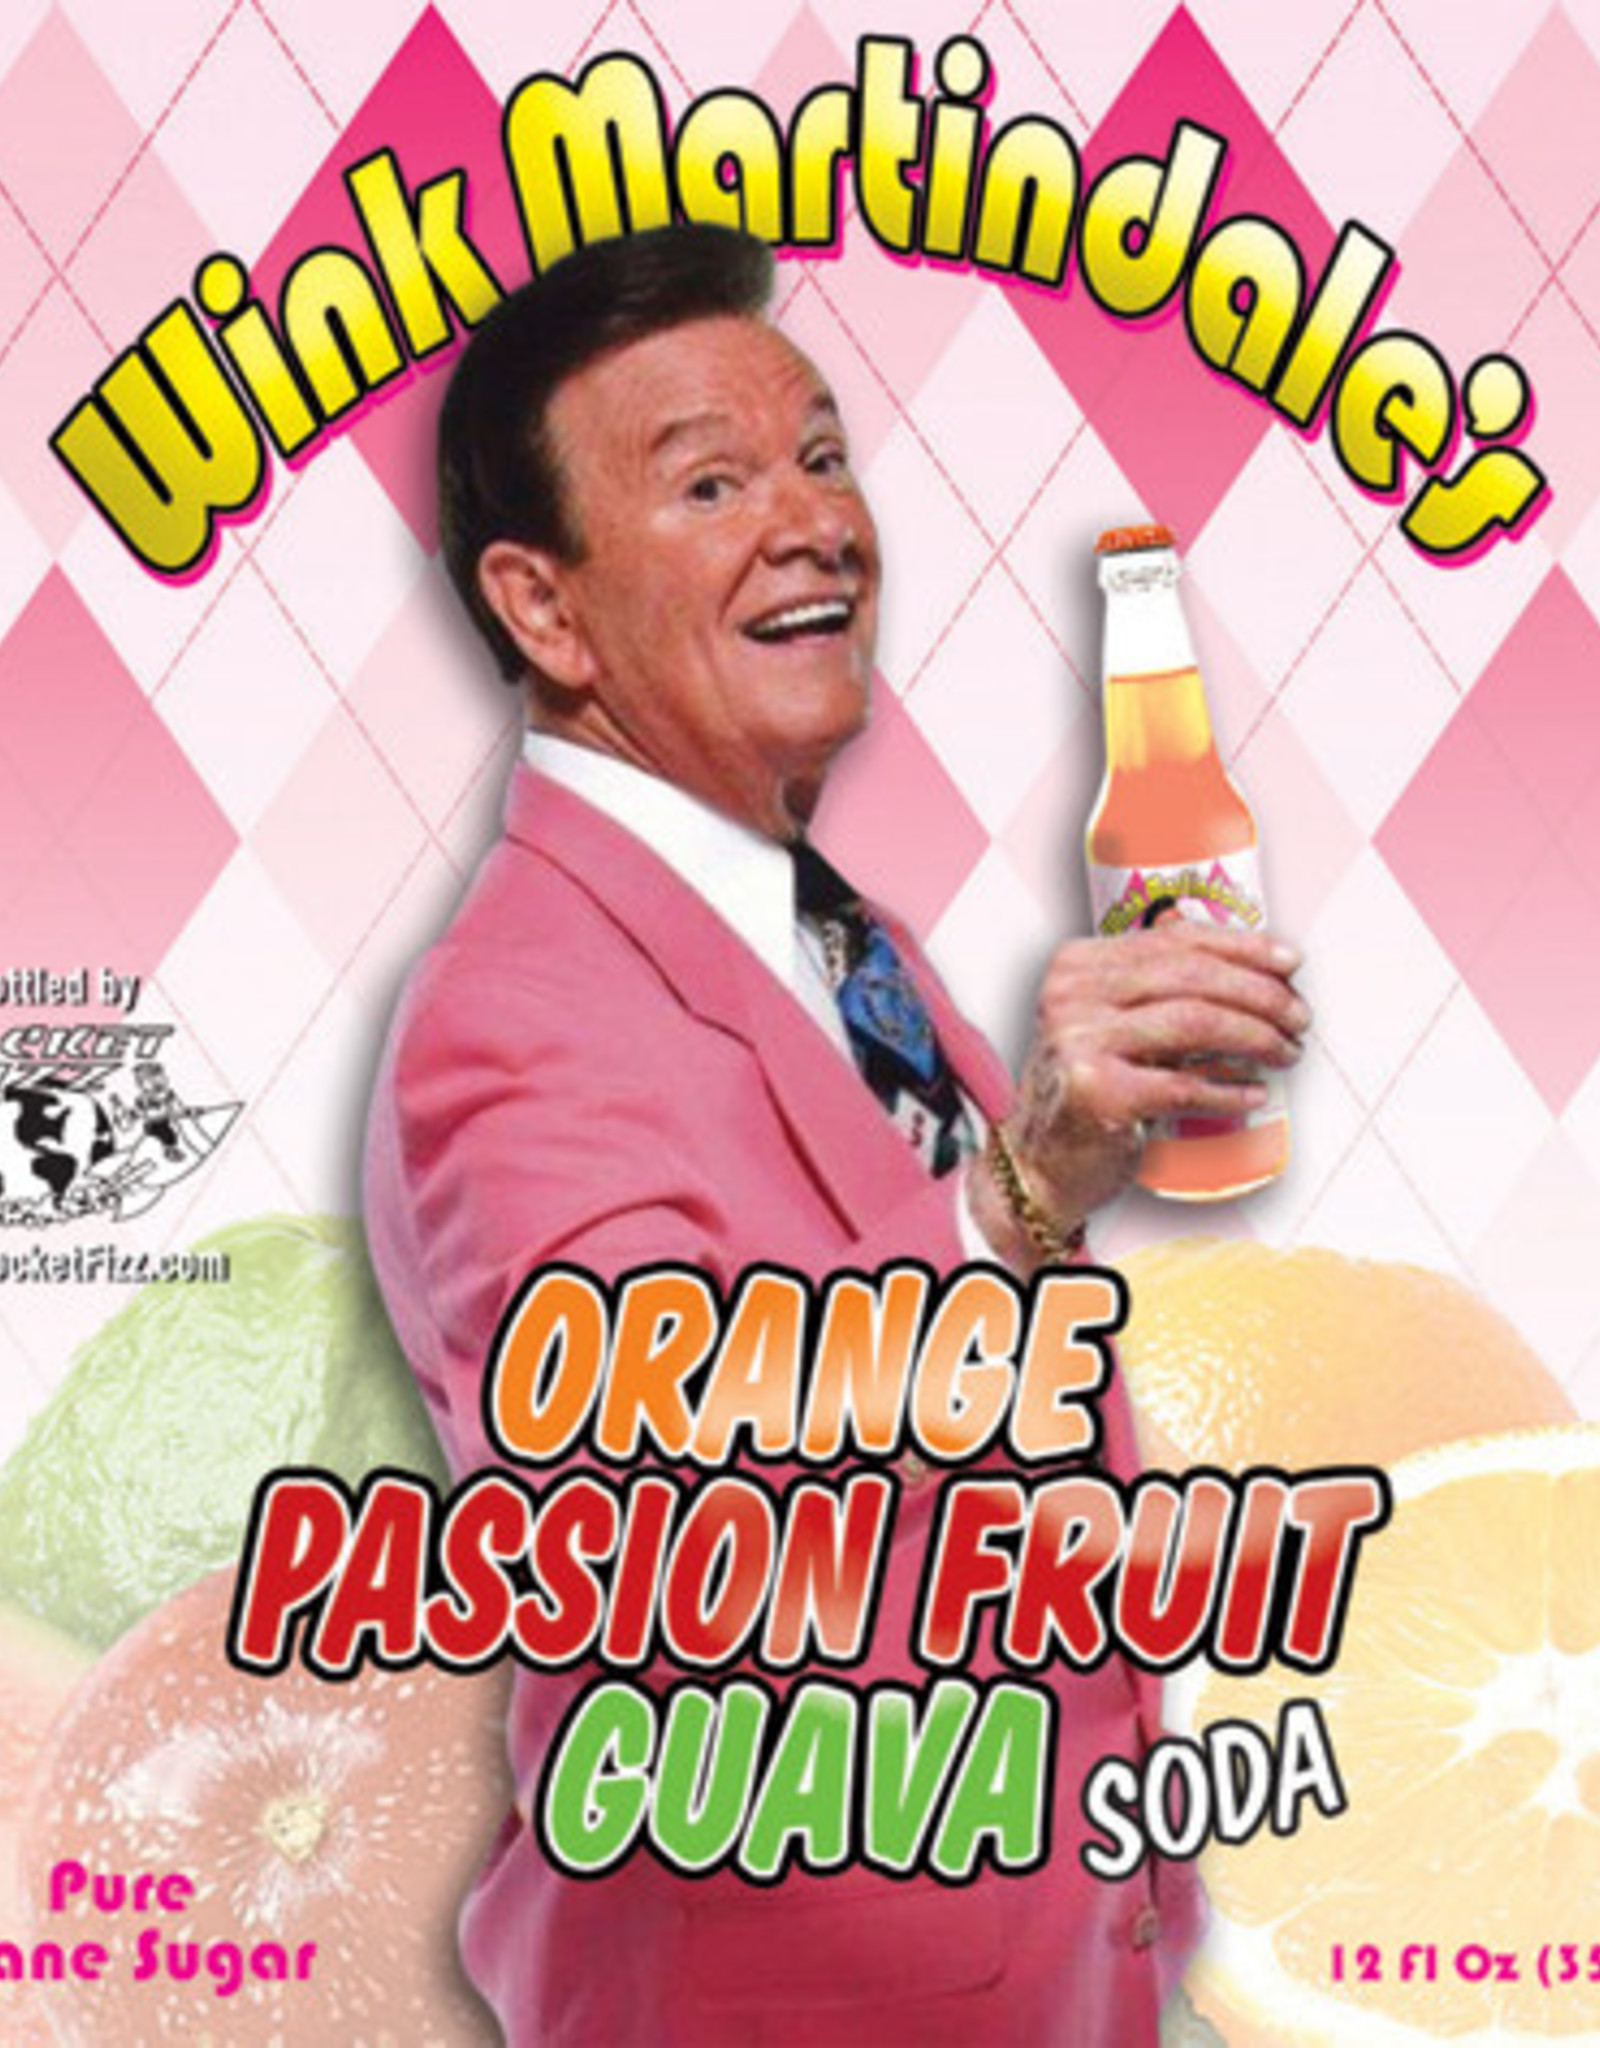 Rocket Fizz Wink Martindale Orange Passion Fruit Guava